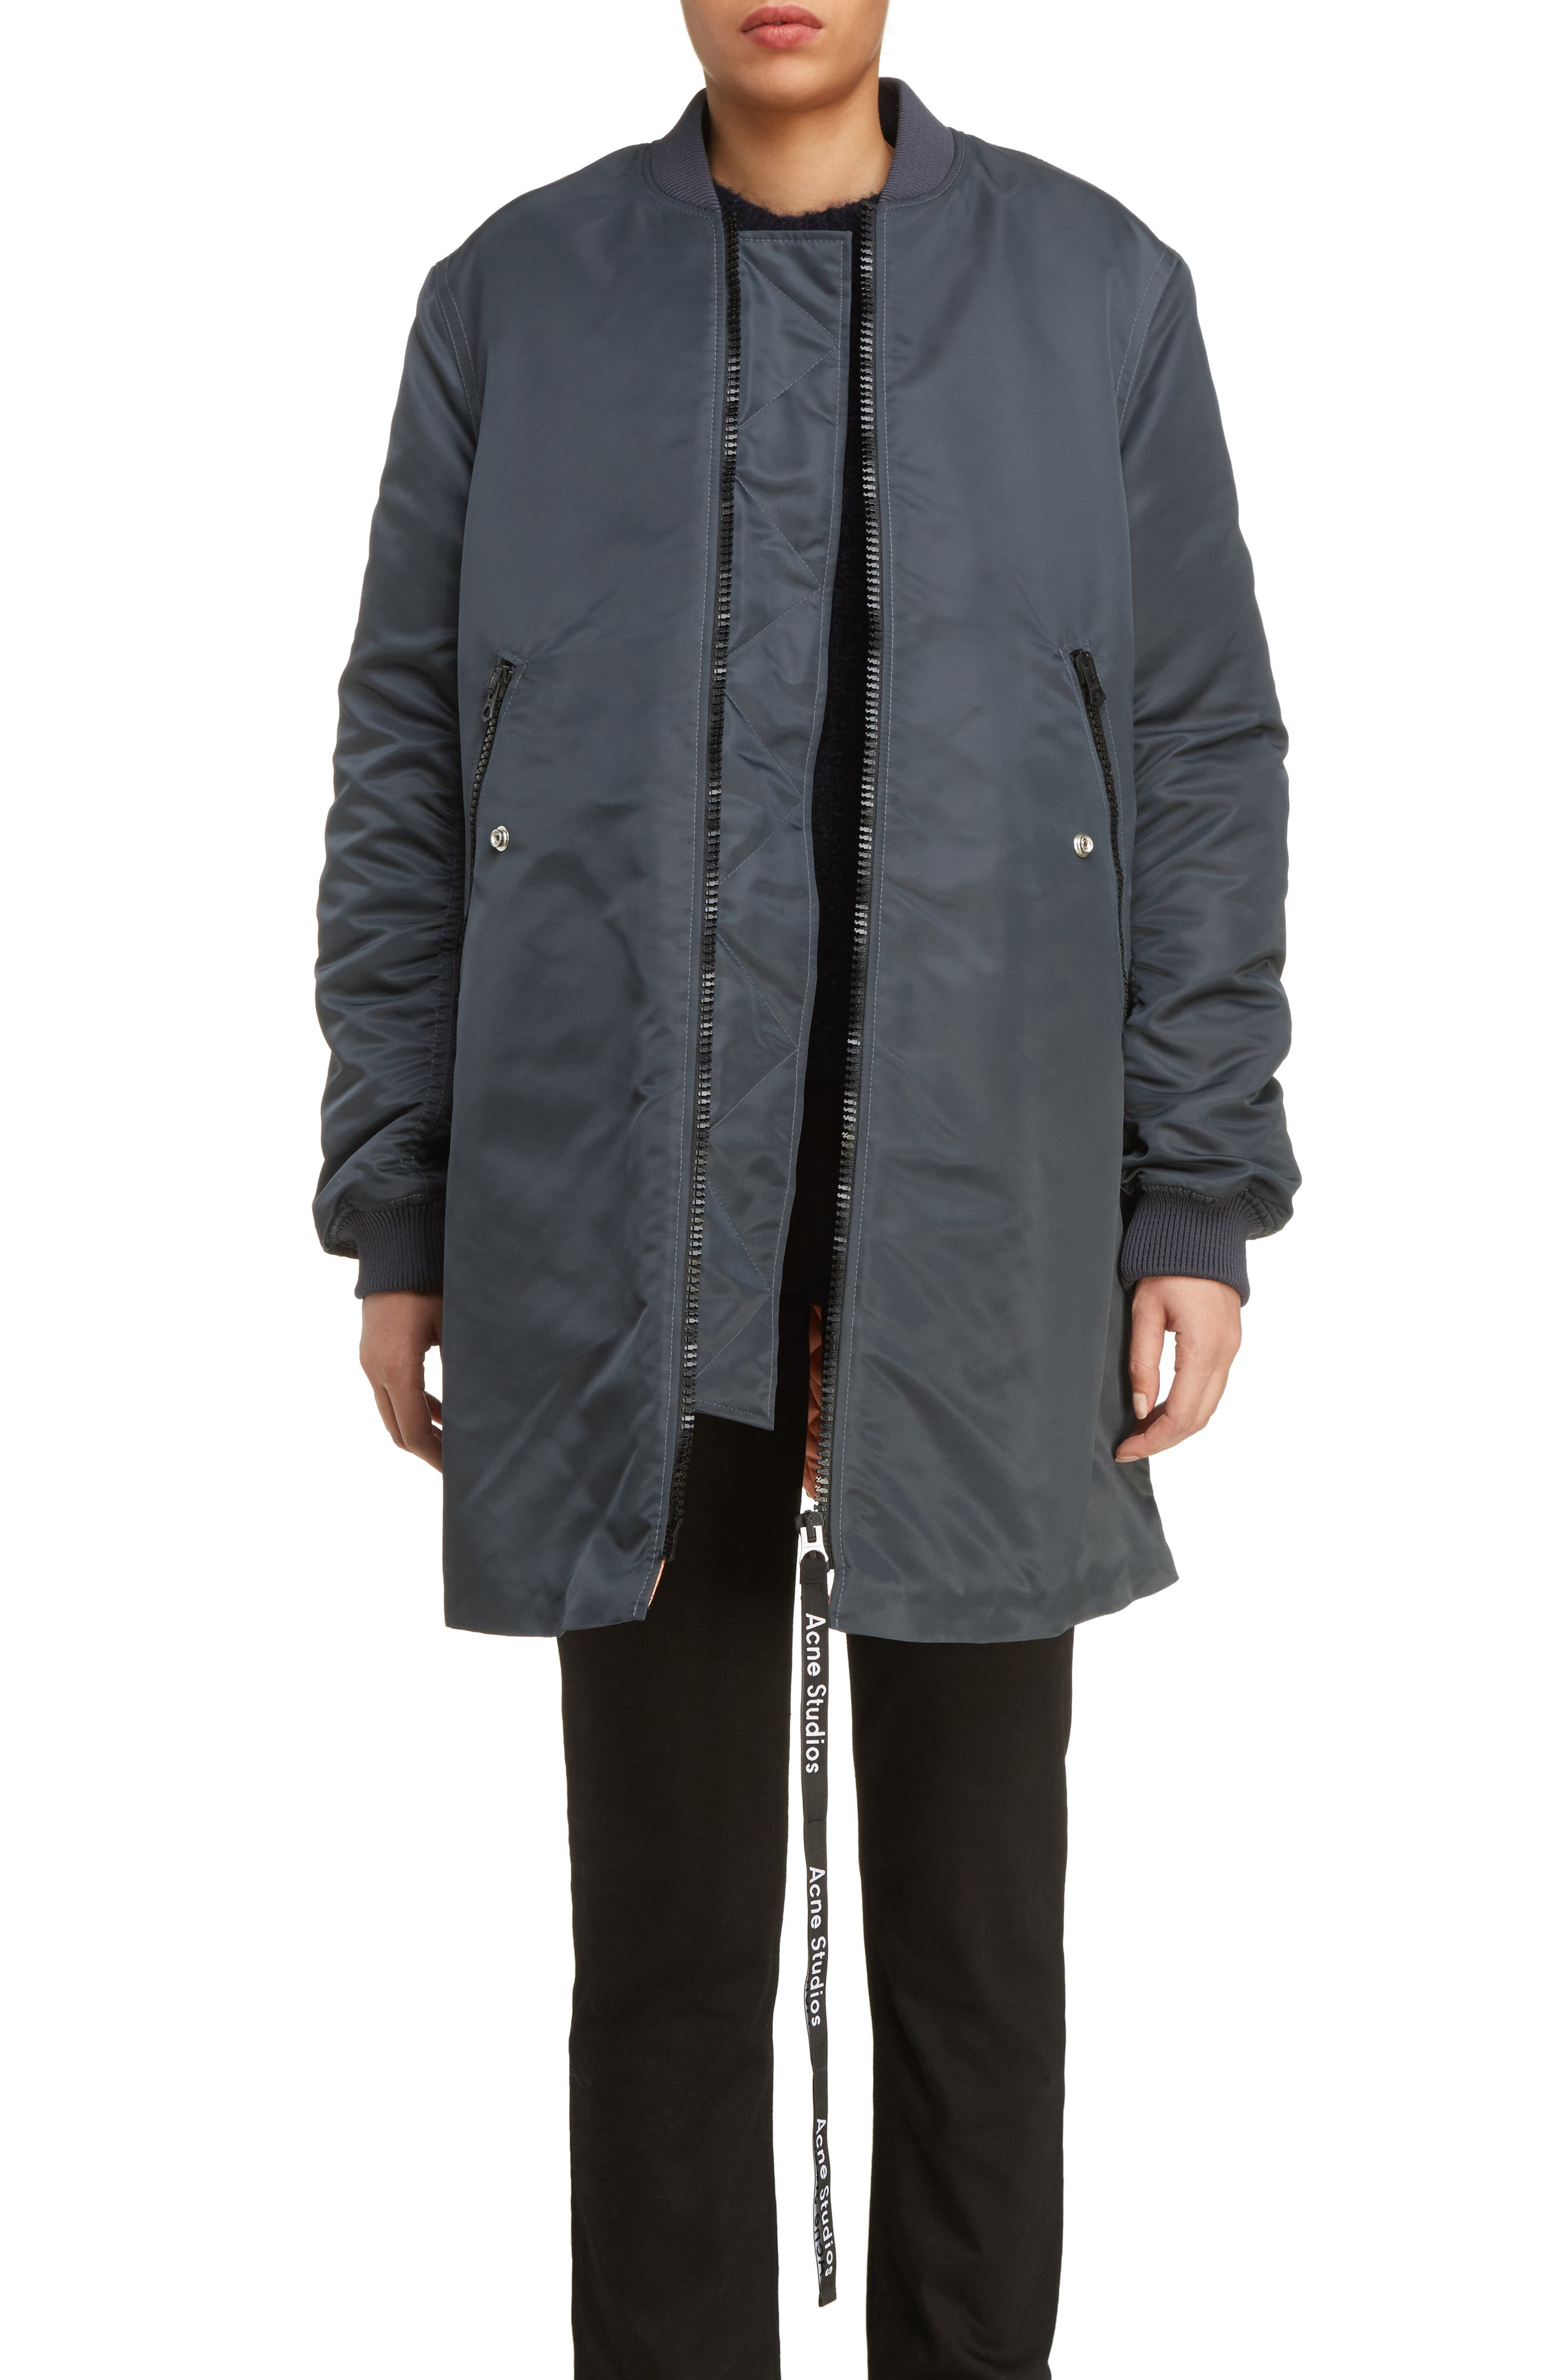 ACNE Studios Coos Long Bomber Jacket